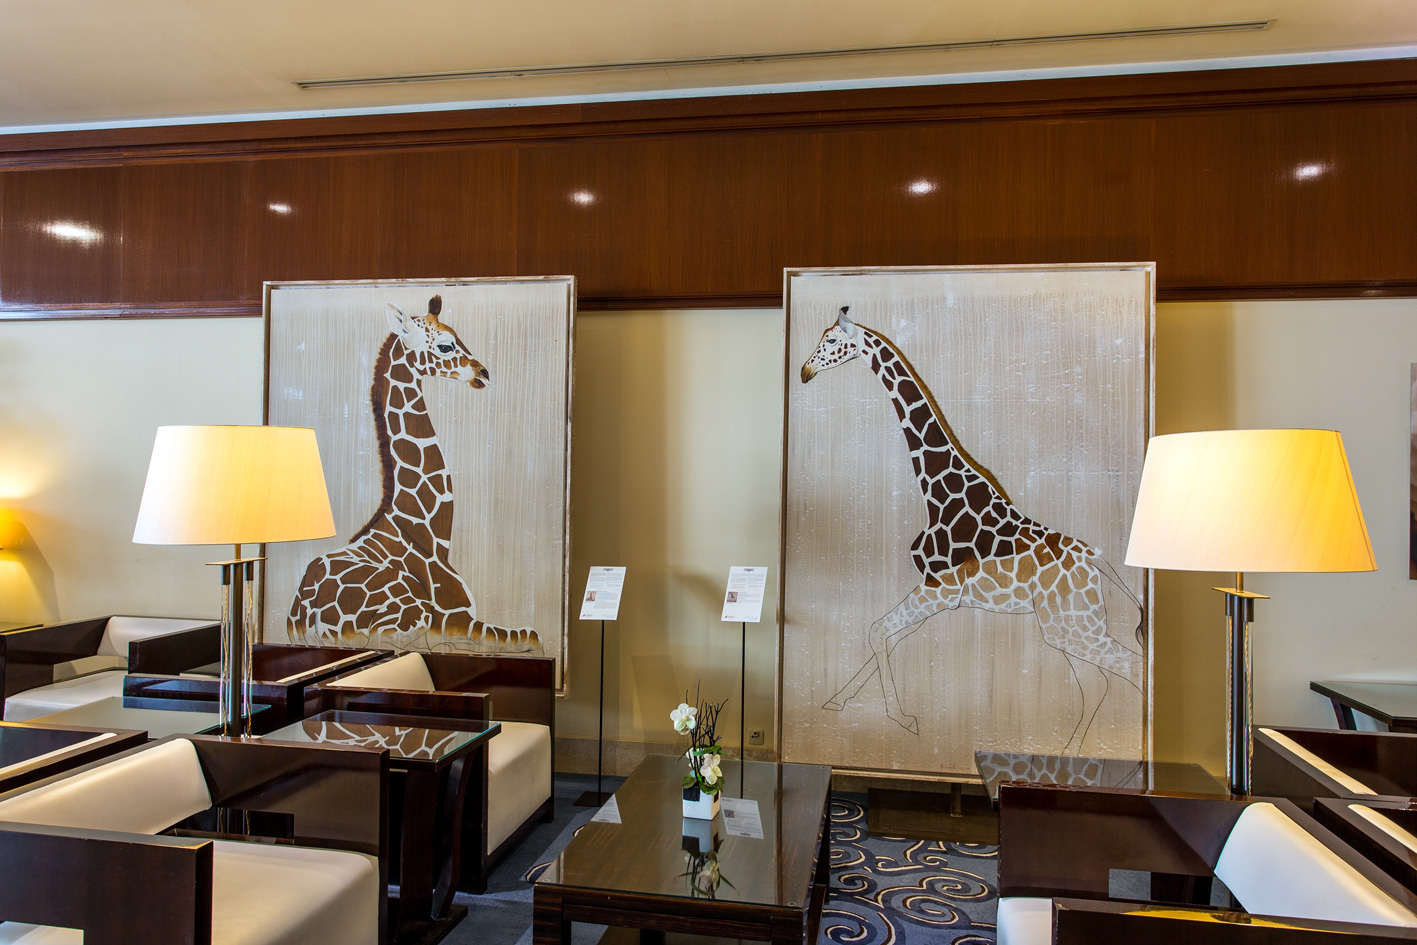 HOTEL FAIRMONT MONACO giraffe-rothschild-threatened-endangered-extinction-animal-painting Animal painting by Thierry Bisch pets wildlife artist painter canvas art decoration